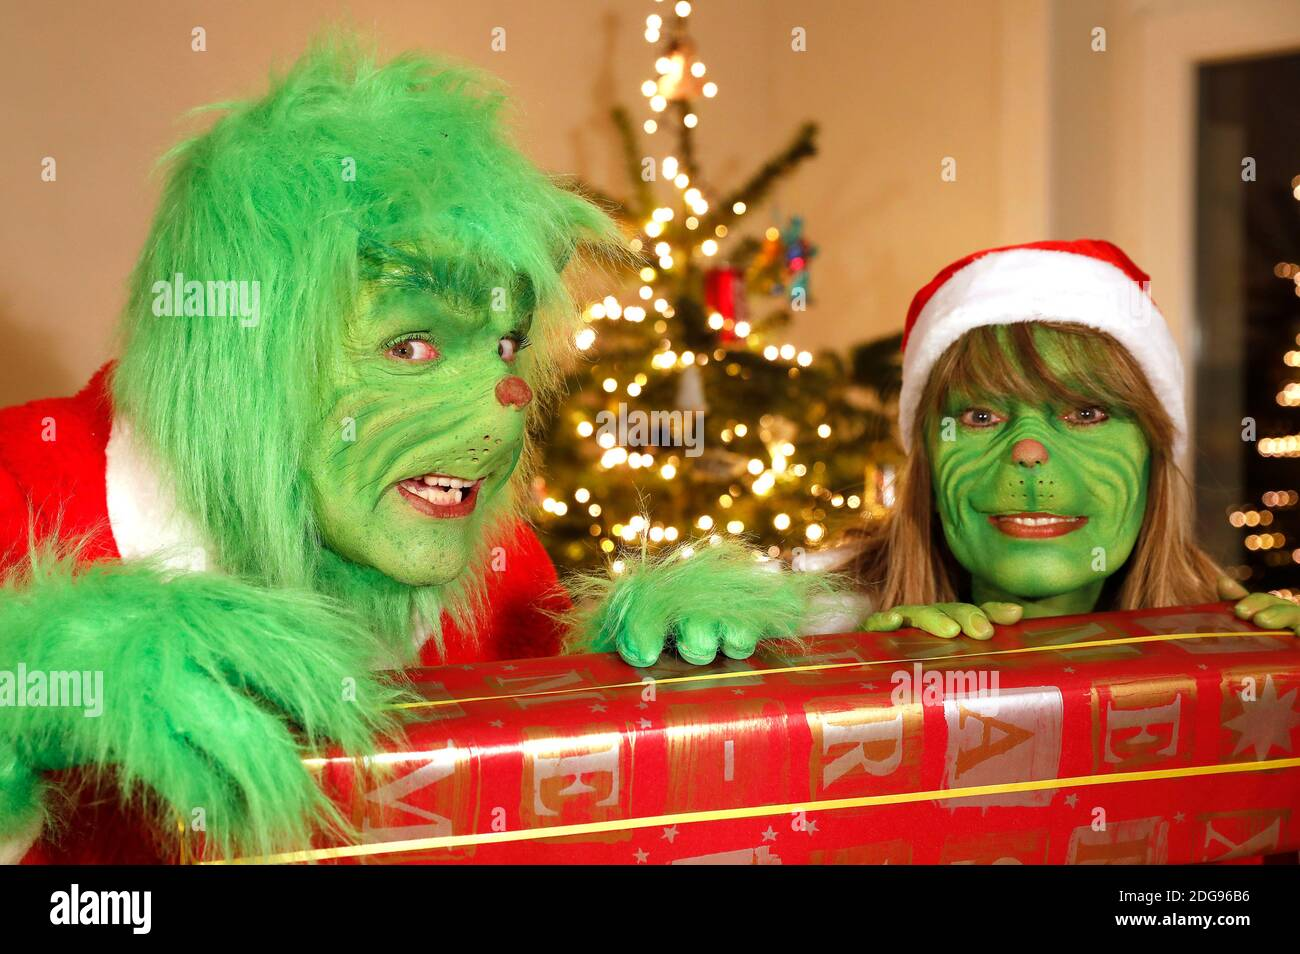 GEEK ART - Bodypainting and Transformaking: 'The Grinch steals Christmas' photoshooting with Enrico Lein as Grinch and Maria Skupin as Mrs. Grinch at Villa Czarnecki in Hameln on December 7, 2020 - A project by the photographer Tschiponnique Skupin and the bodypainter Enrico Lein Stock Photo